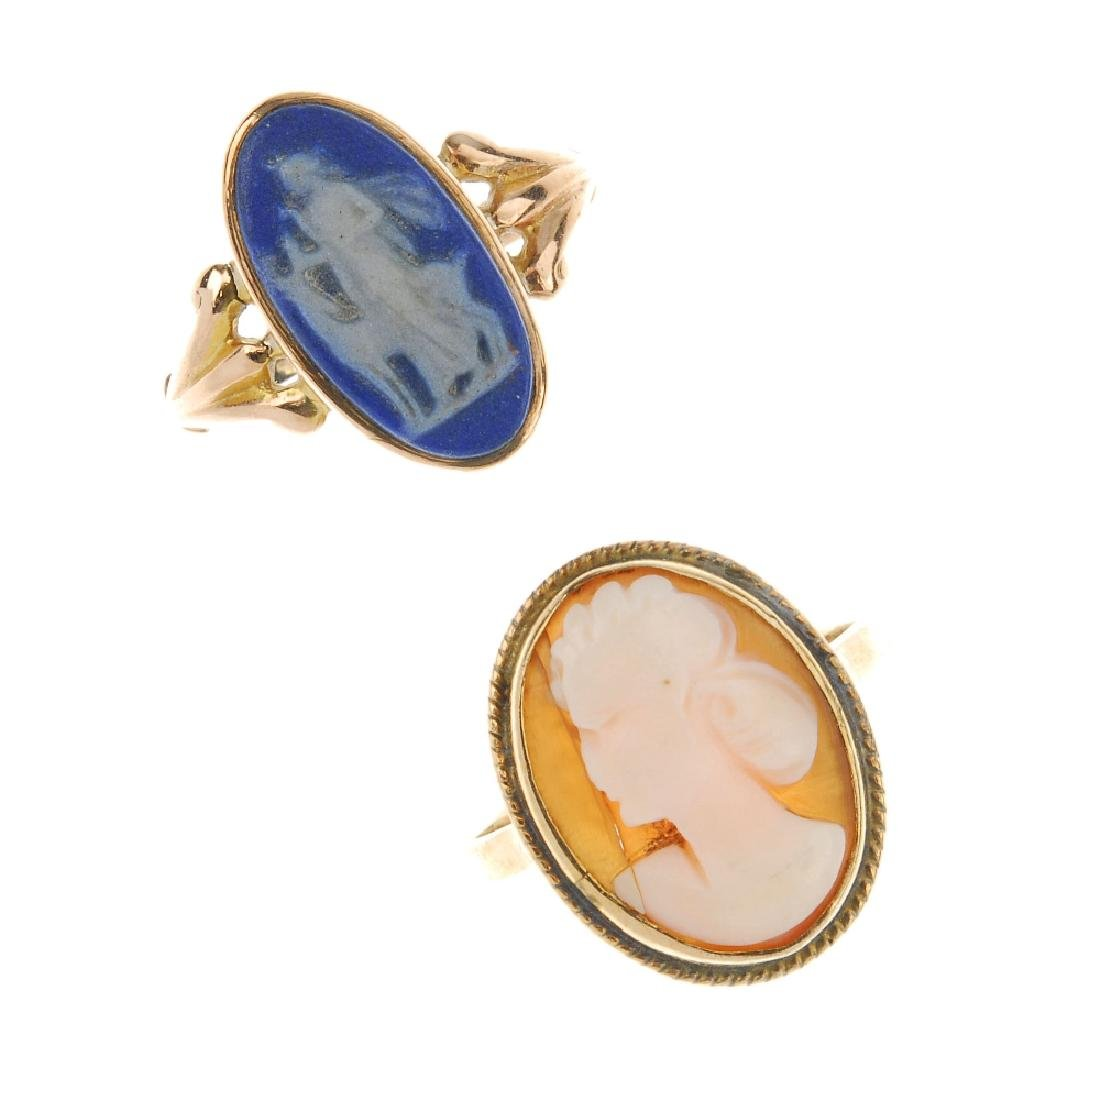 Two cameo rings. The first a 9ct gold Wedgwood blue